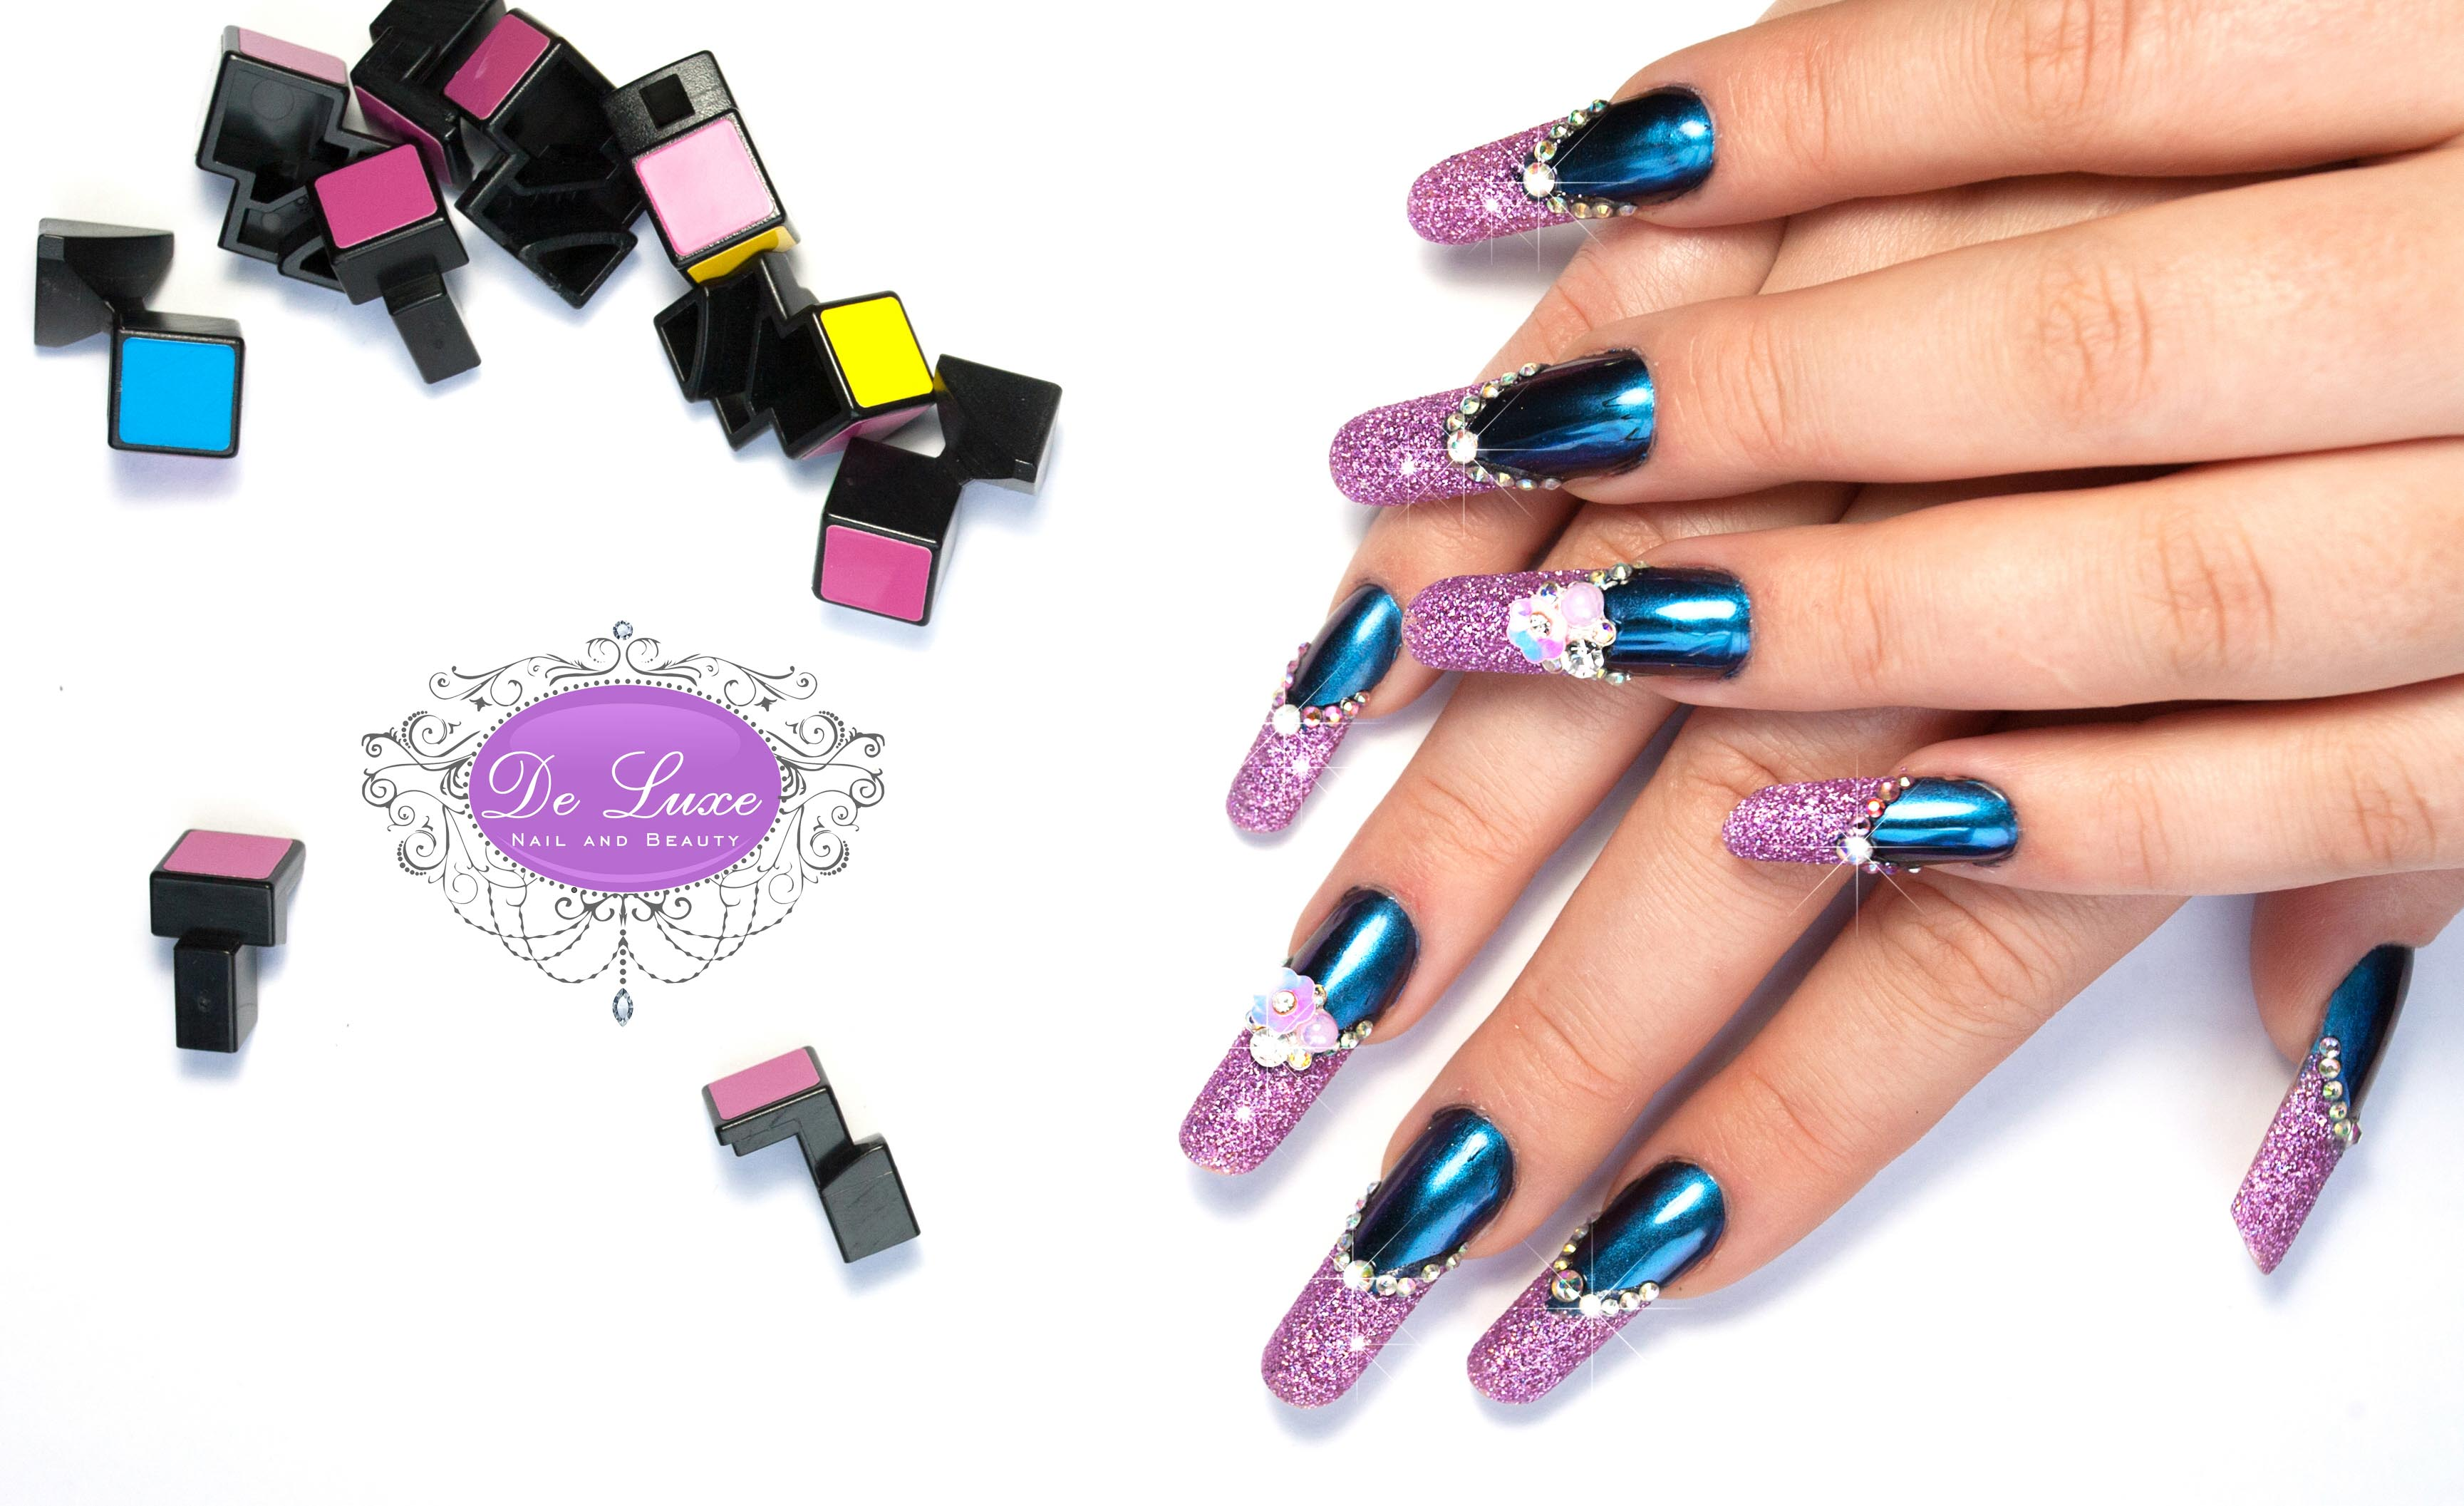 de luxe nail & beauty